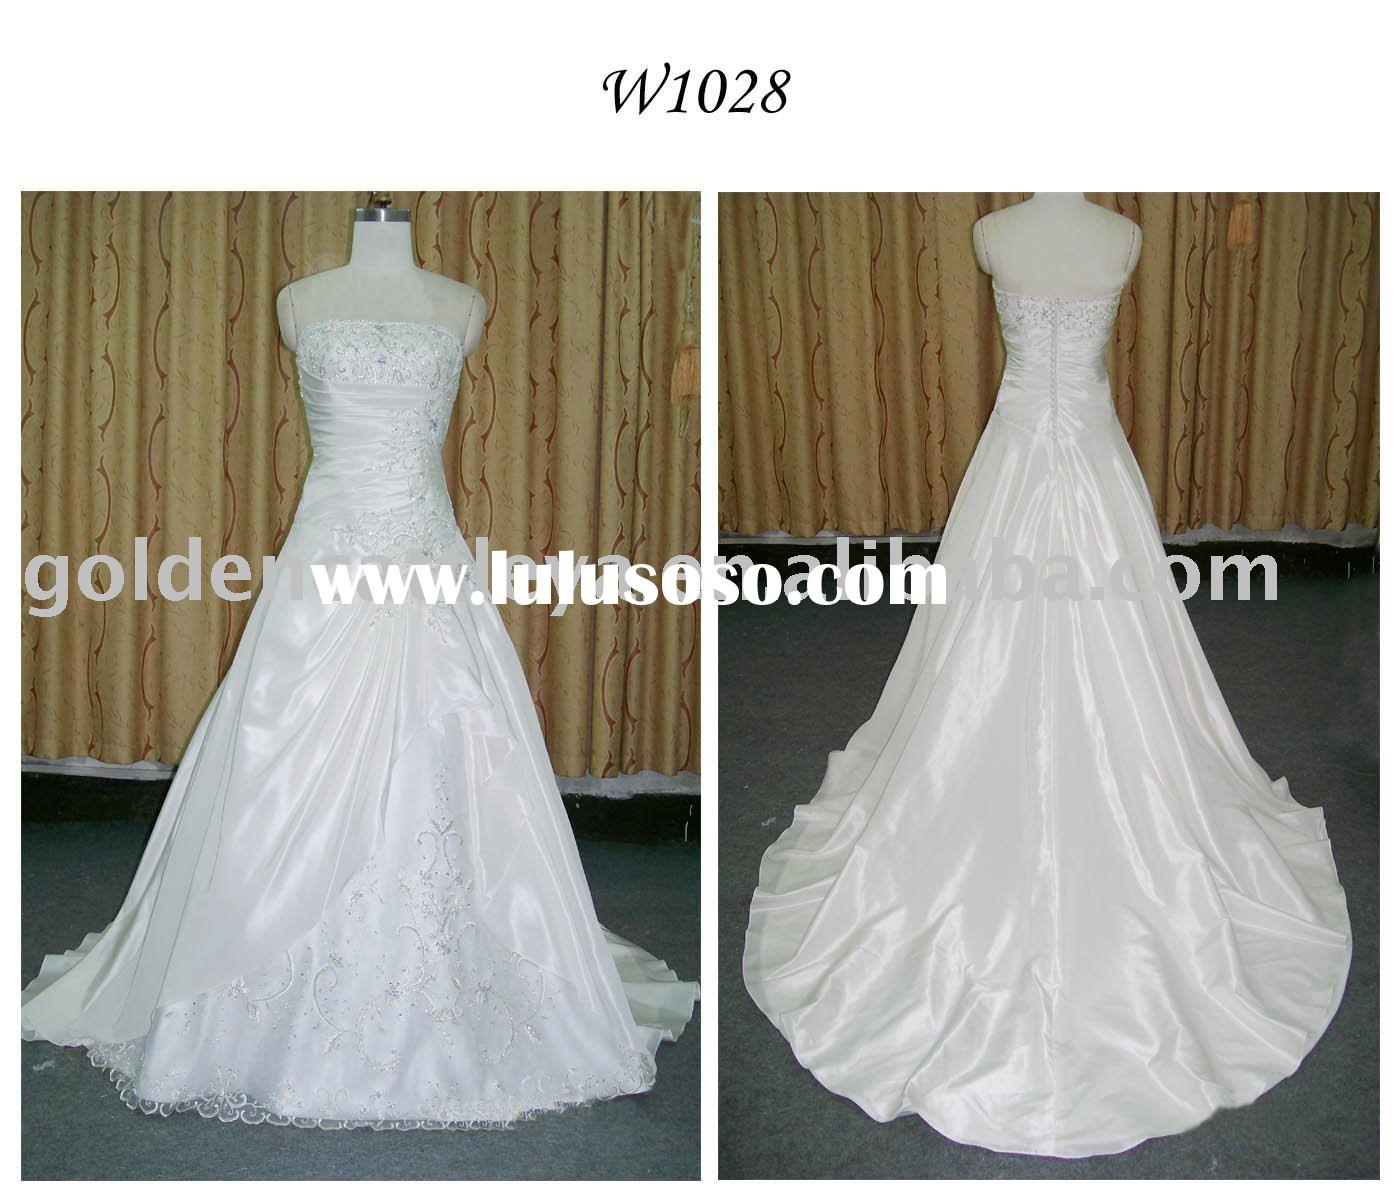 W1028 luxurious strapless embroider & beaded pregnant women dresses